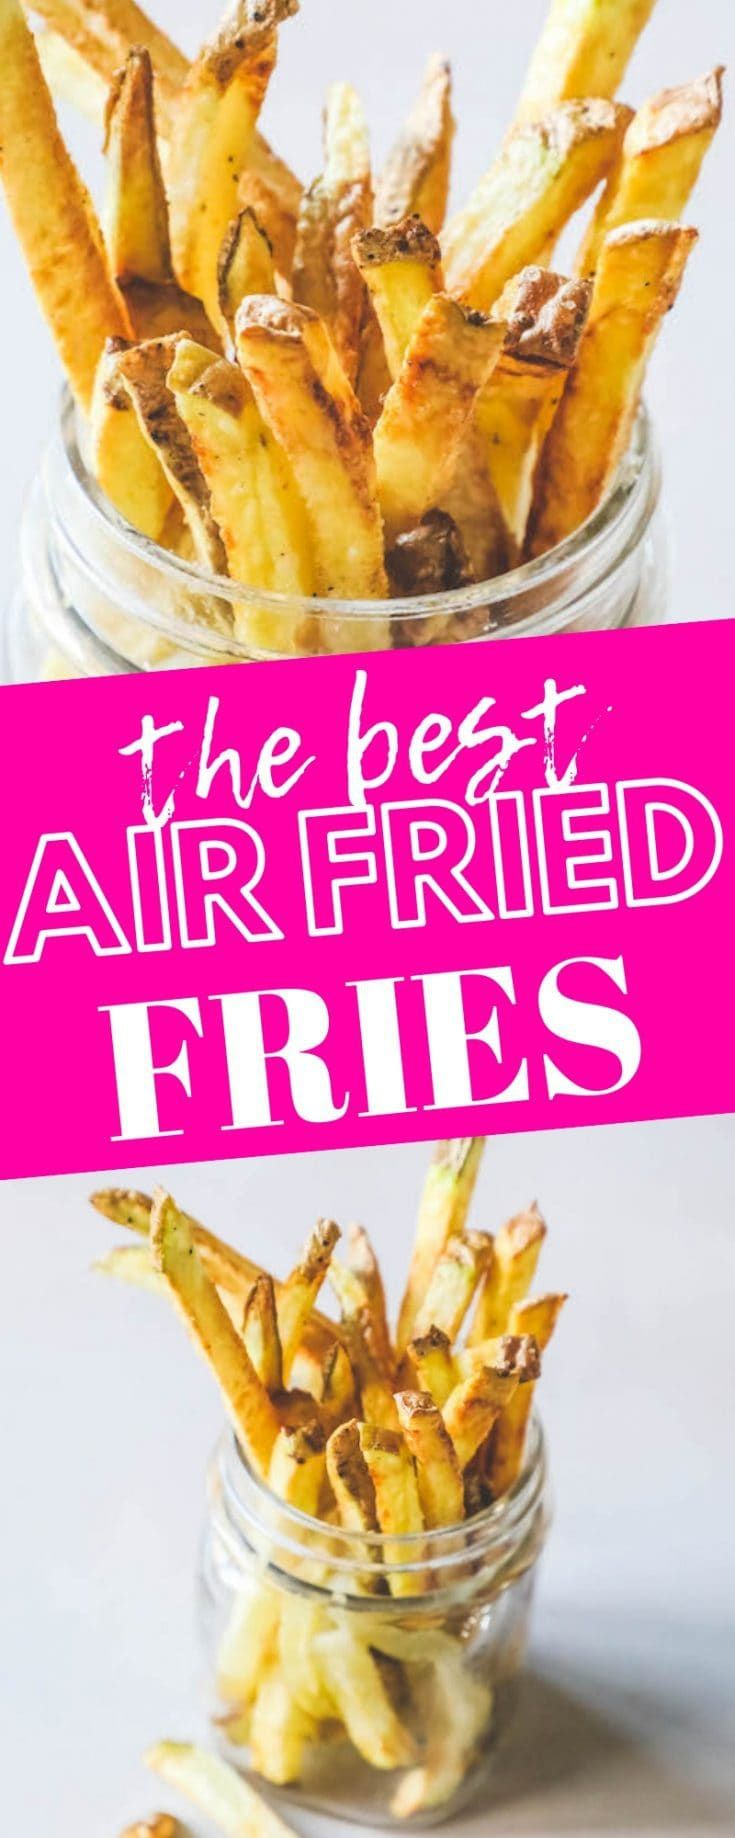 The Best Easy Air Fryer French Fries Recipe - Sweet Cs Designs #airfryerrecipes